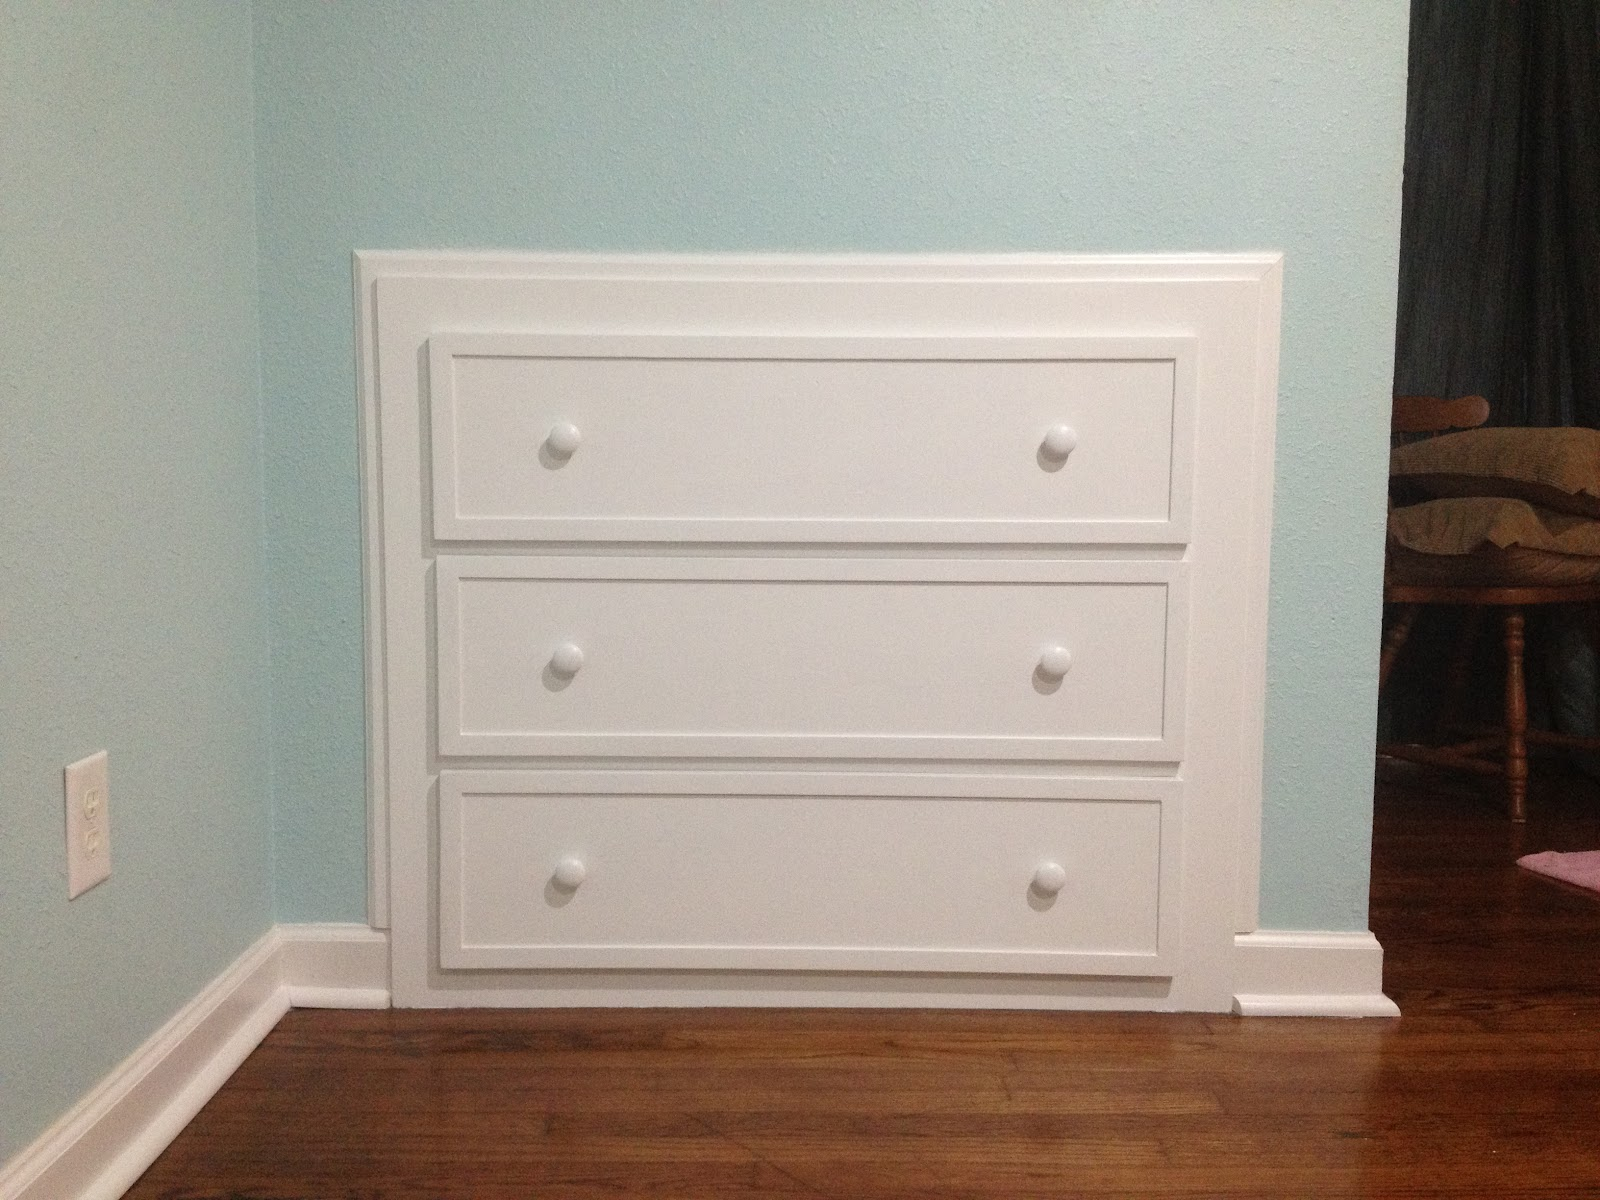 All that was left to do was 4 coats of paint and here is the finished product